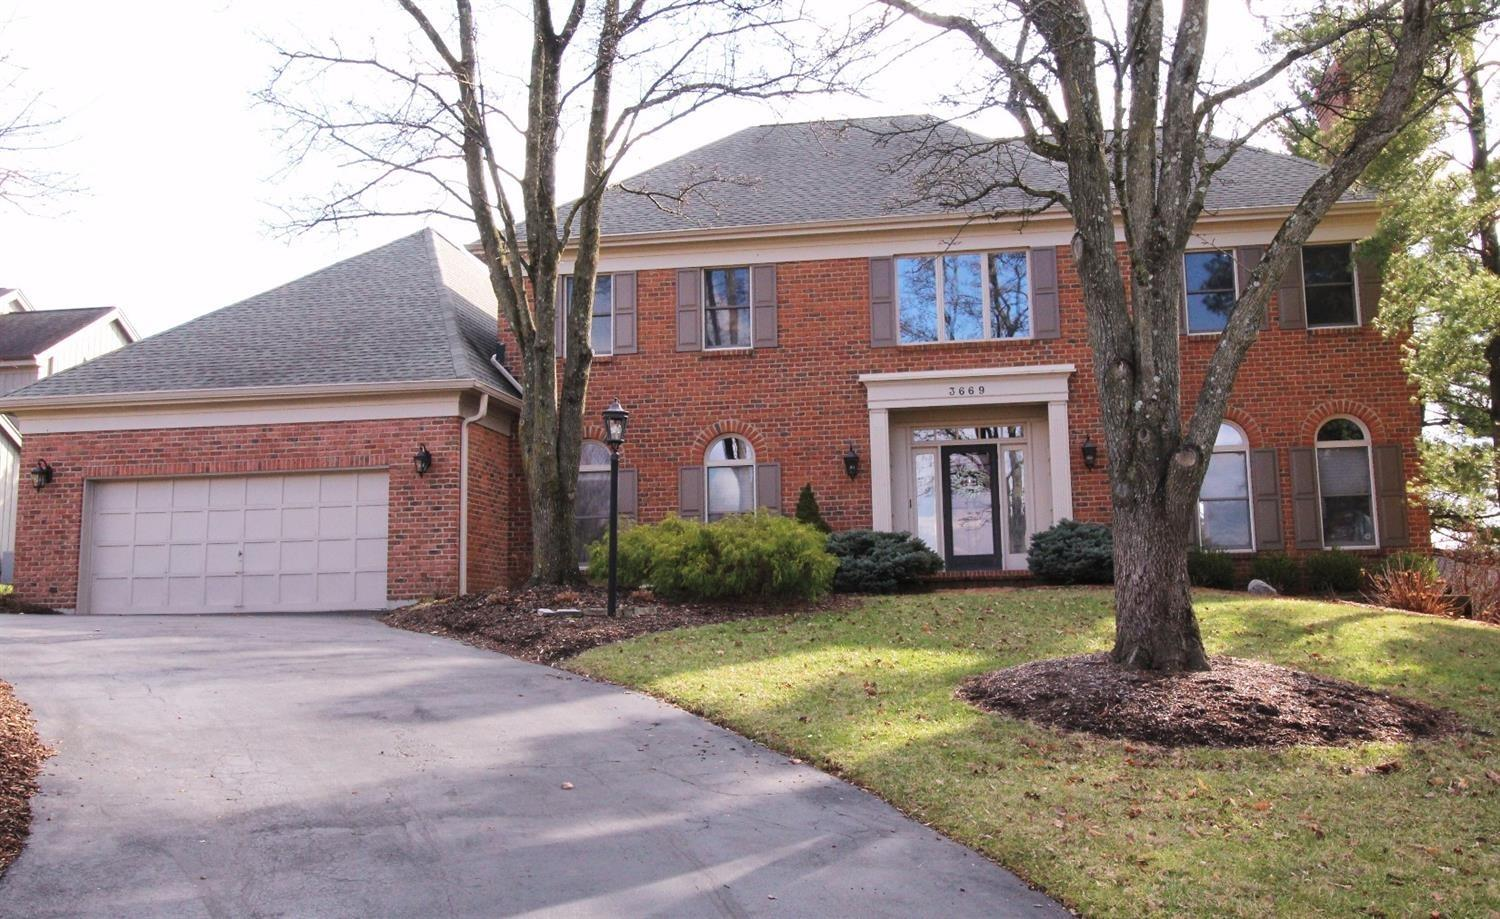 3669 Carpenters Creek Dr Evendale, OH